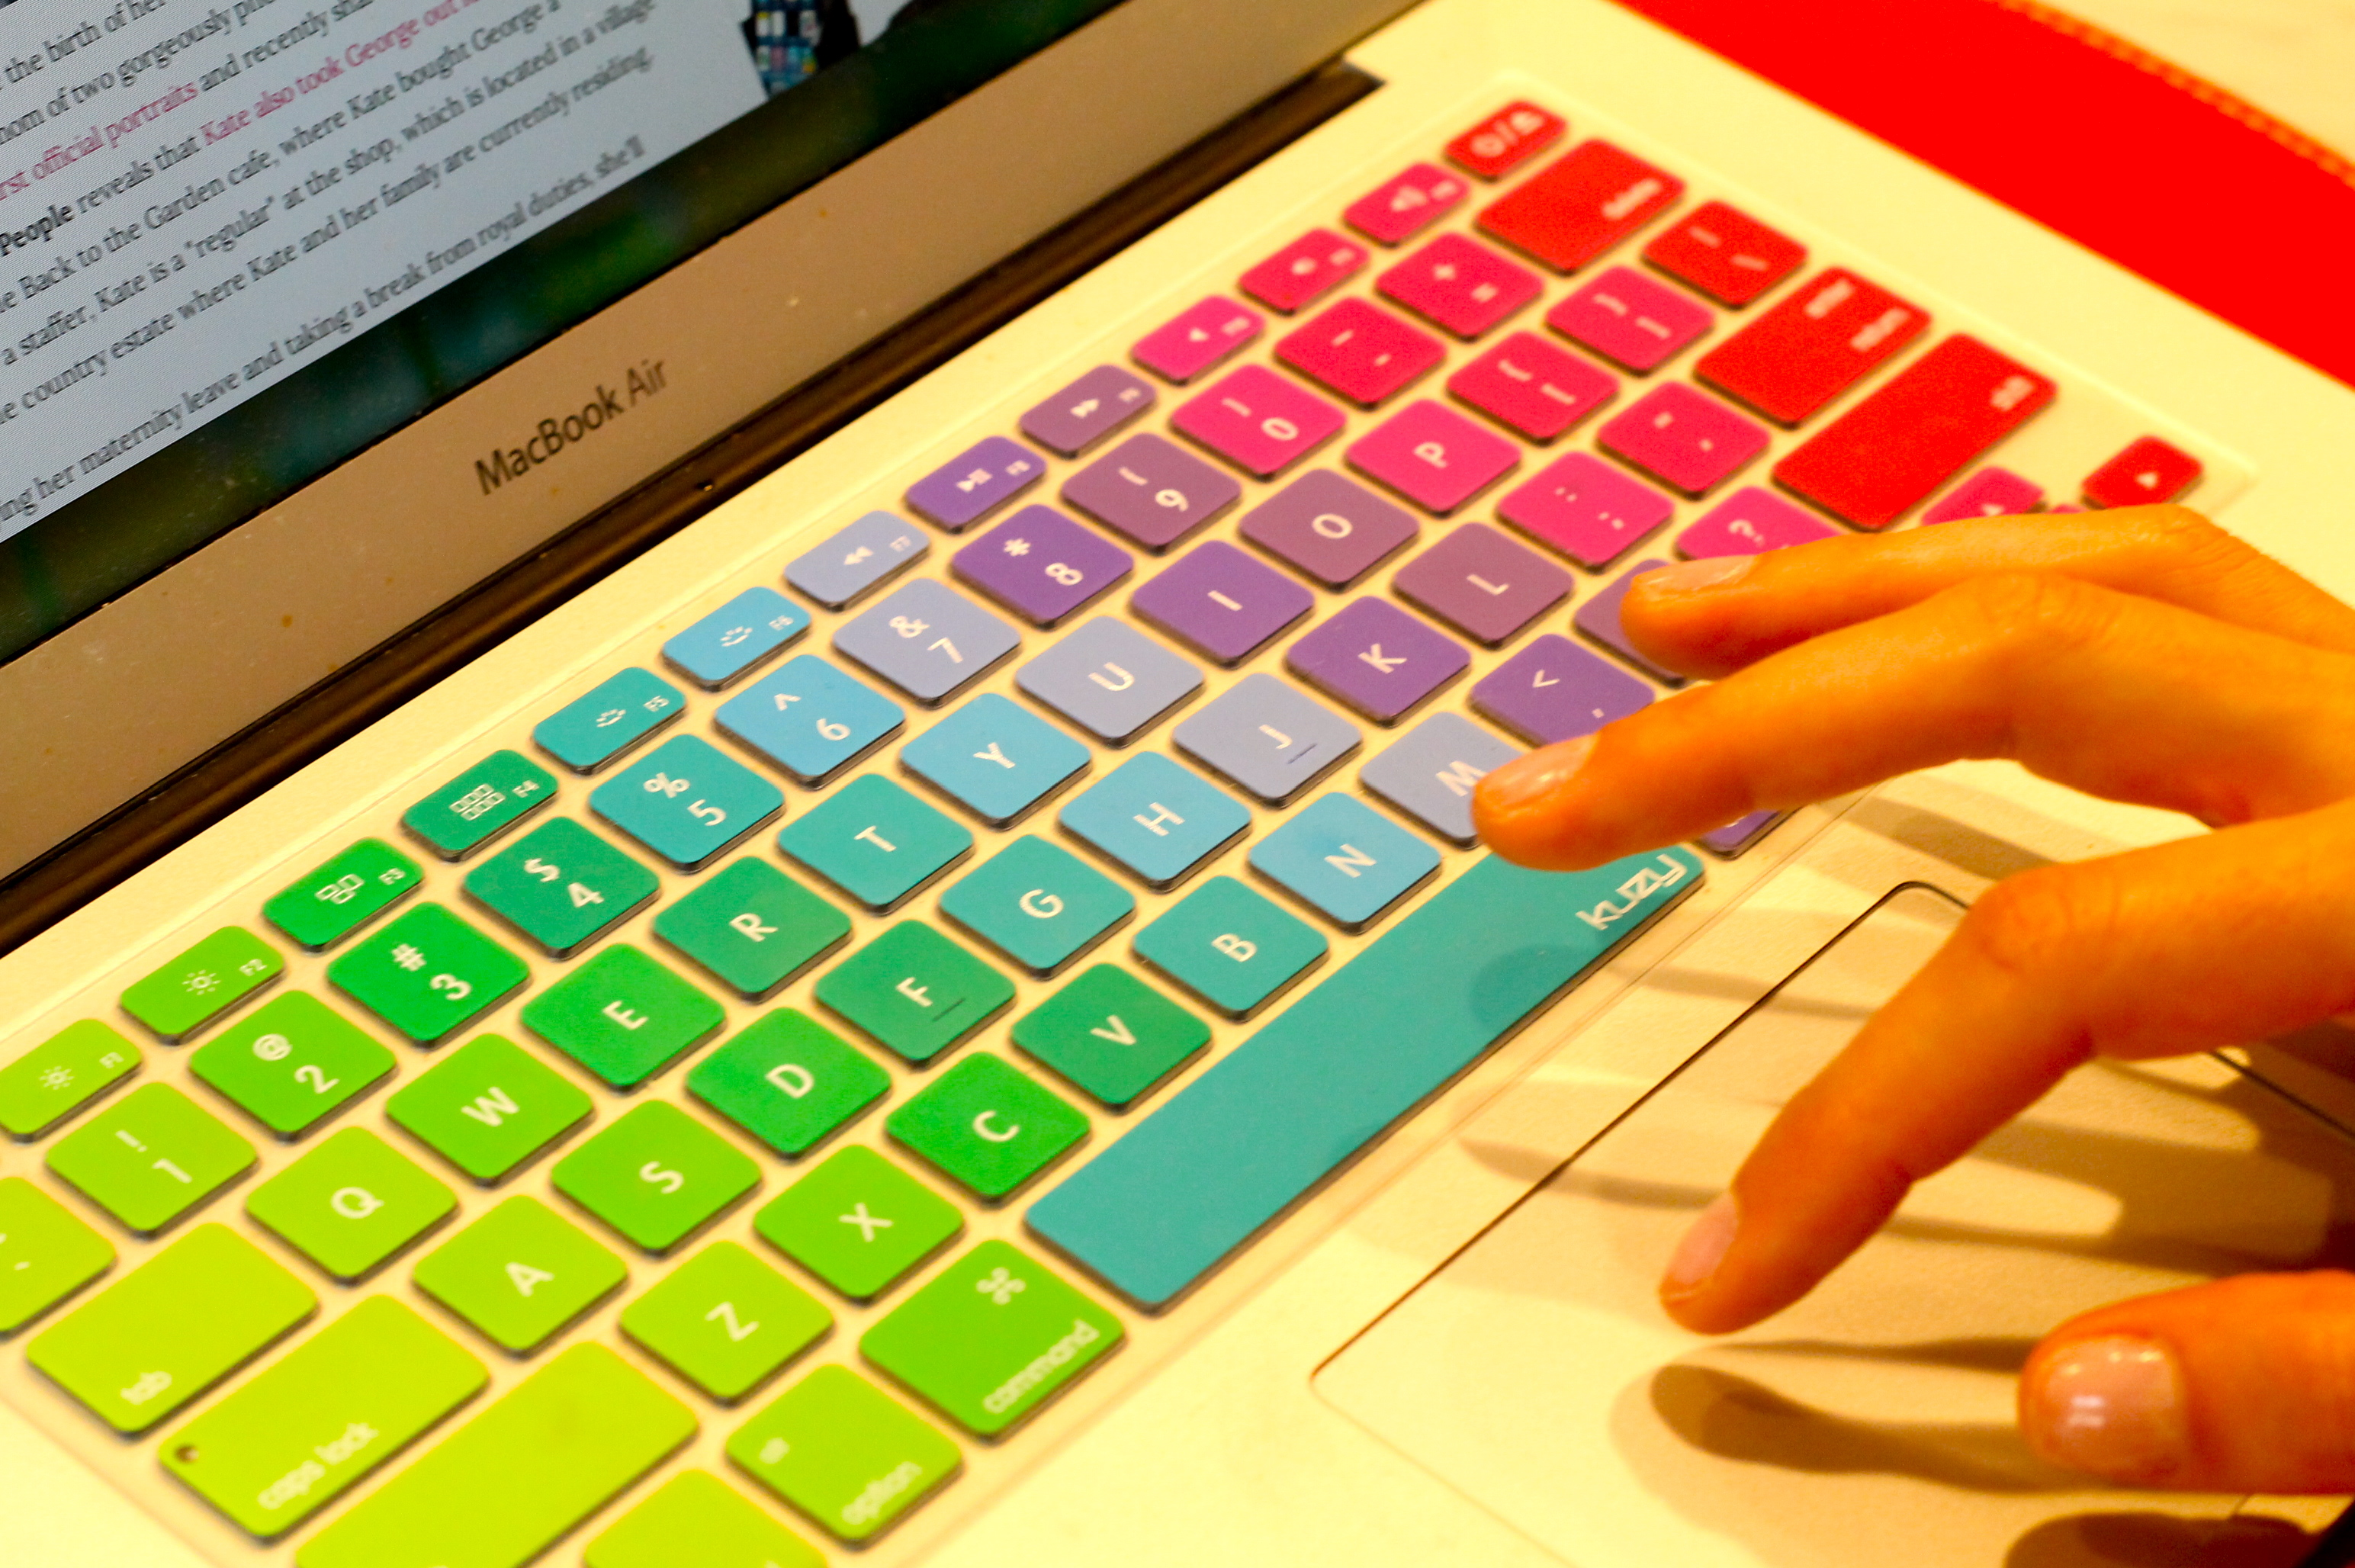 IMG 0949 - How to Have a Colorful Keyboard and More